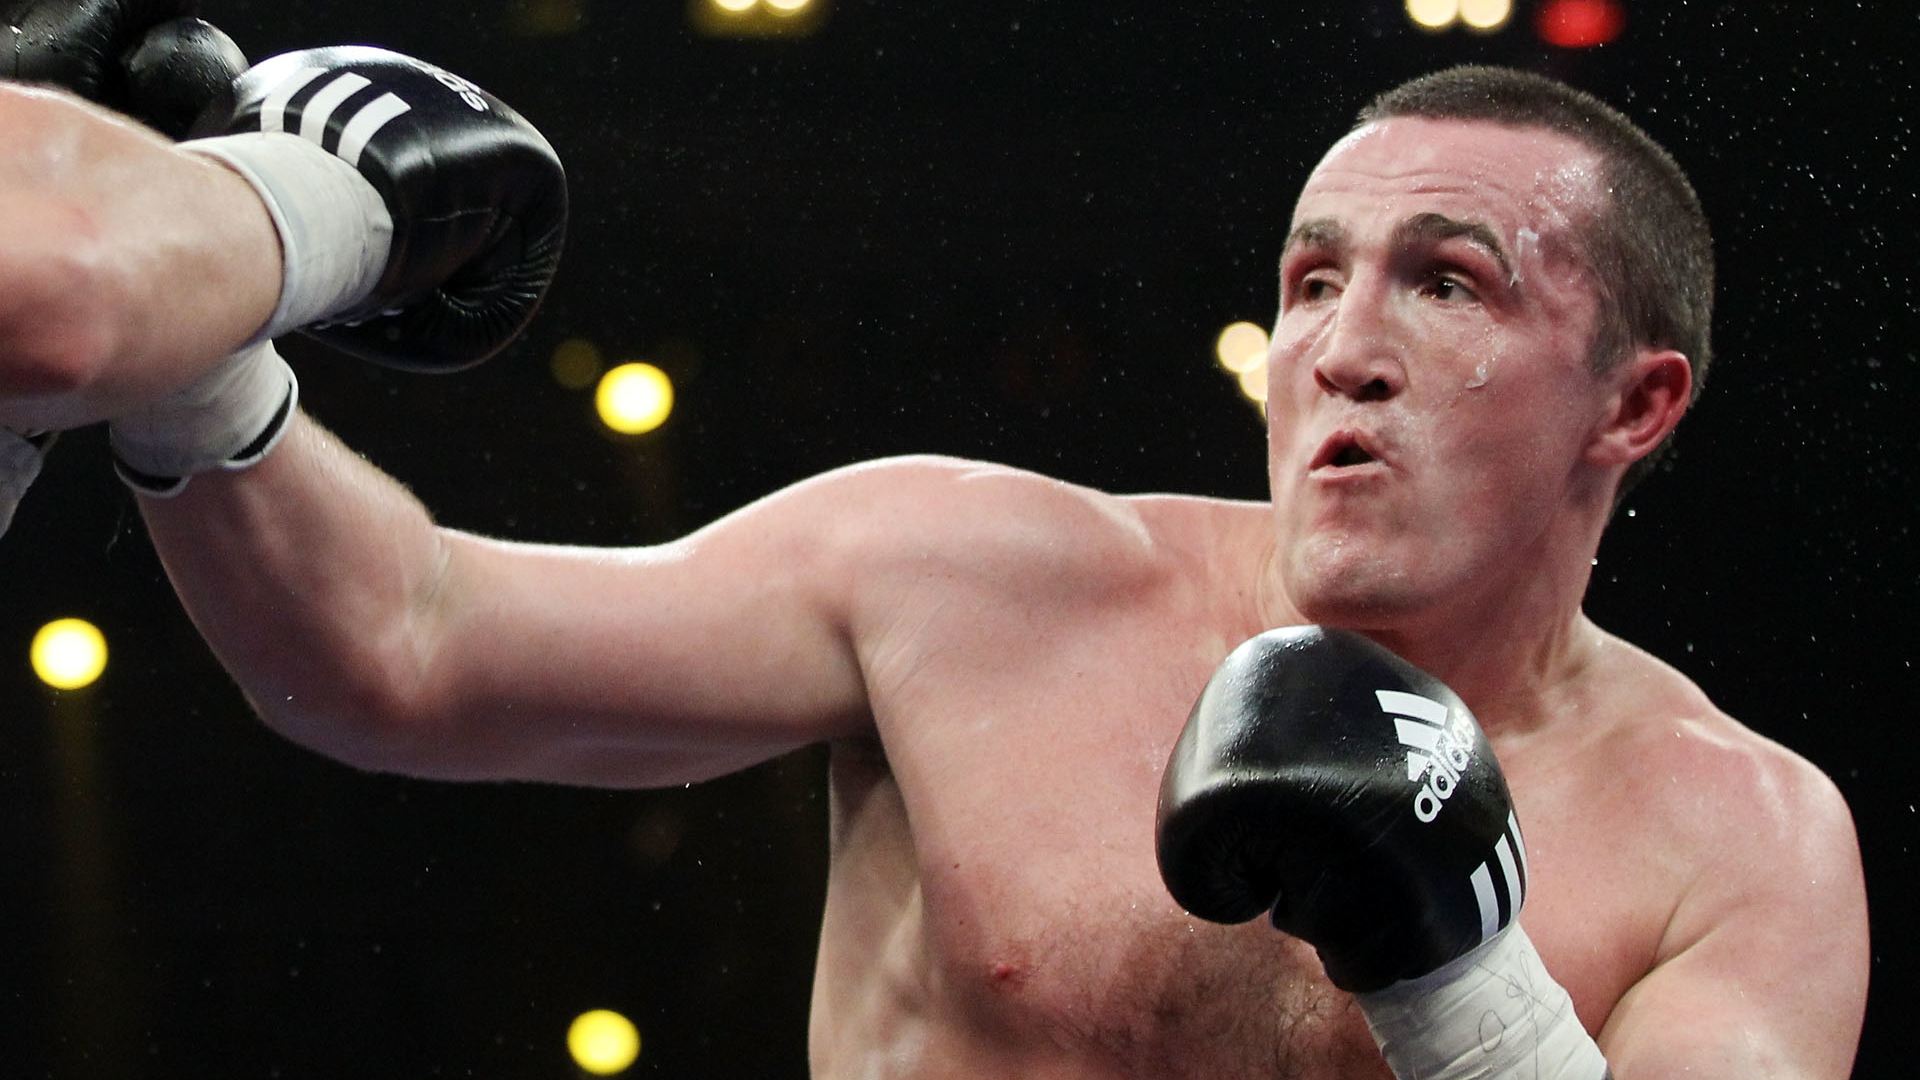 Lebedev vs. Wilson results: Denis Lebedev cruises to victory, calls out Usyk